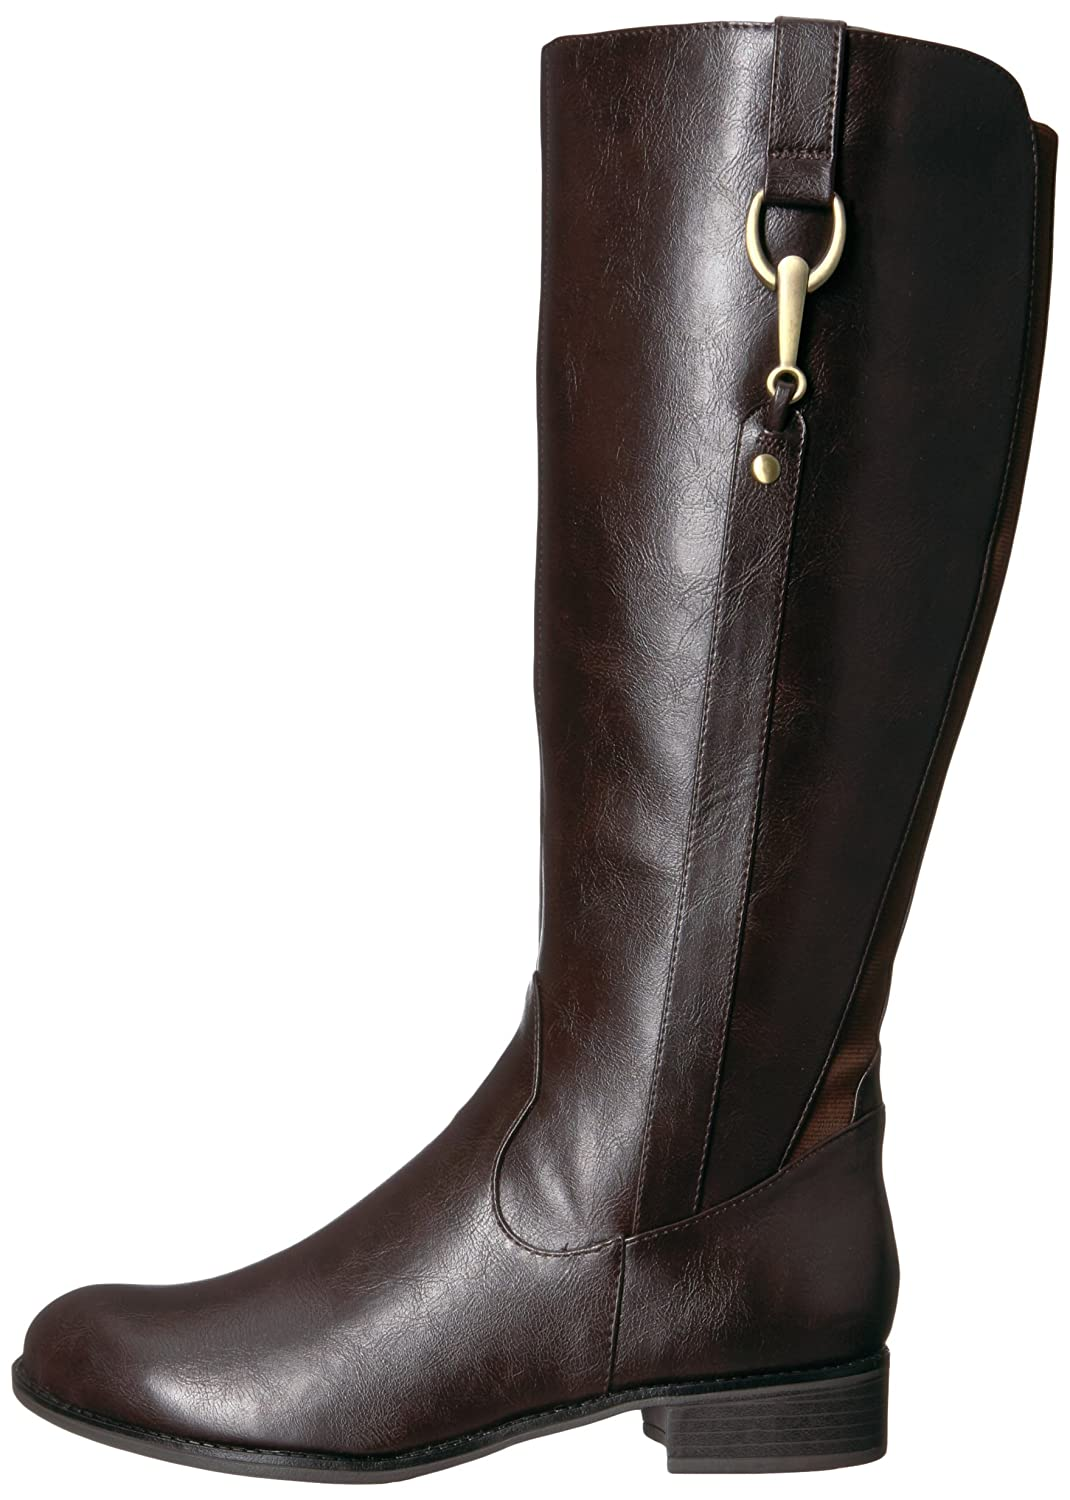 9044a91414d4 LifeStride Women s Sikora Riding Boot B07325P51C 9 B(M) B(M) B(M) US ...